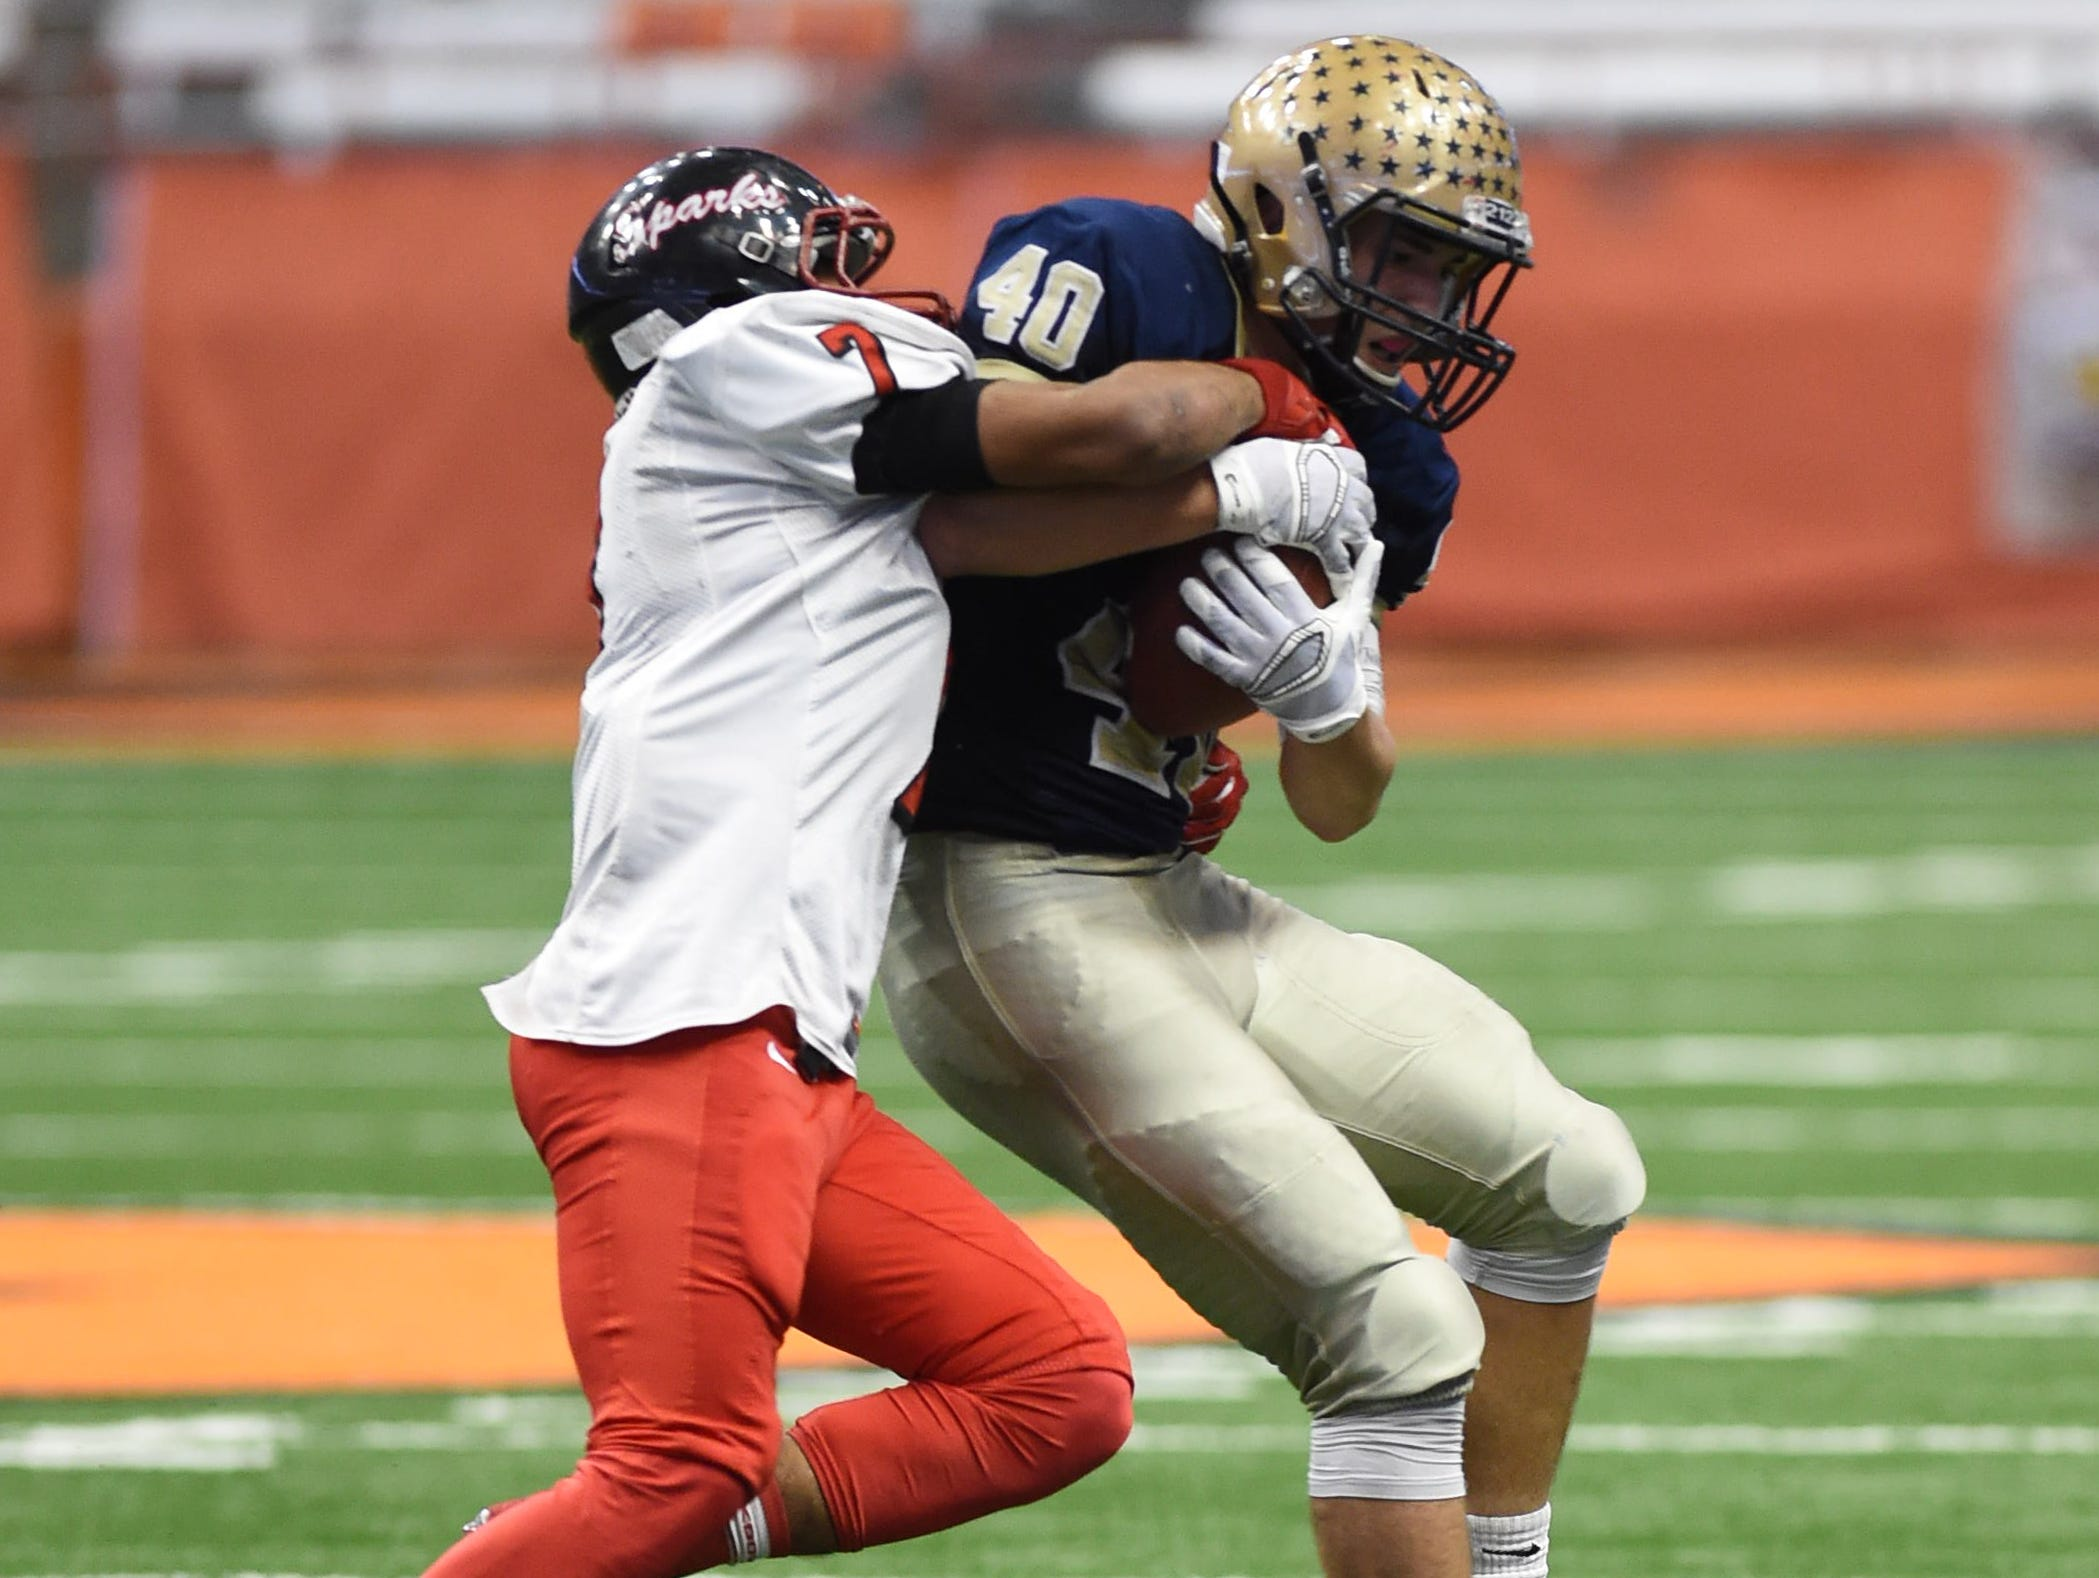 Lourdes' Billy Wagner gets tackled by South Park's Tyree Brown during the New York State Championship final in Syracuse on Friday.